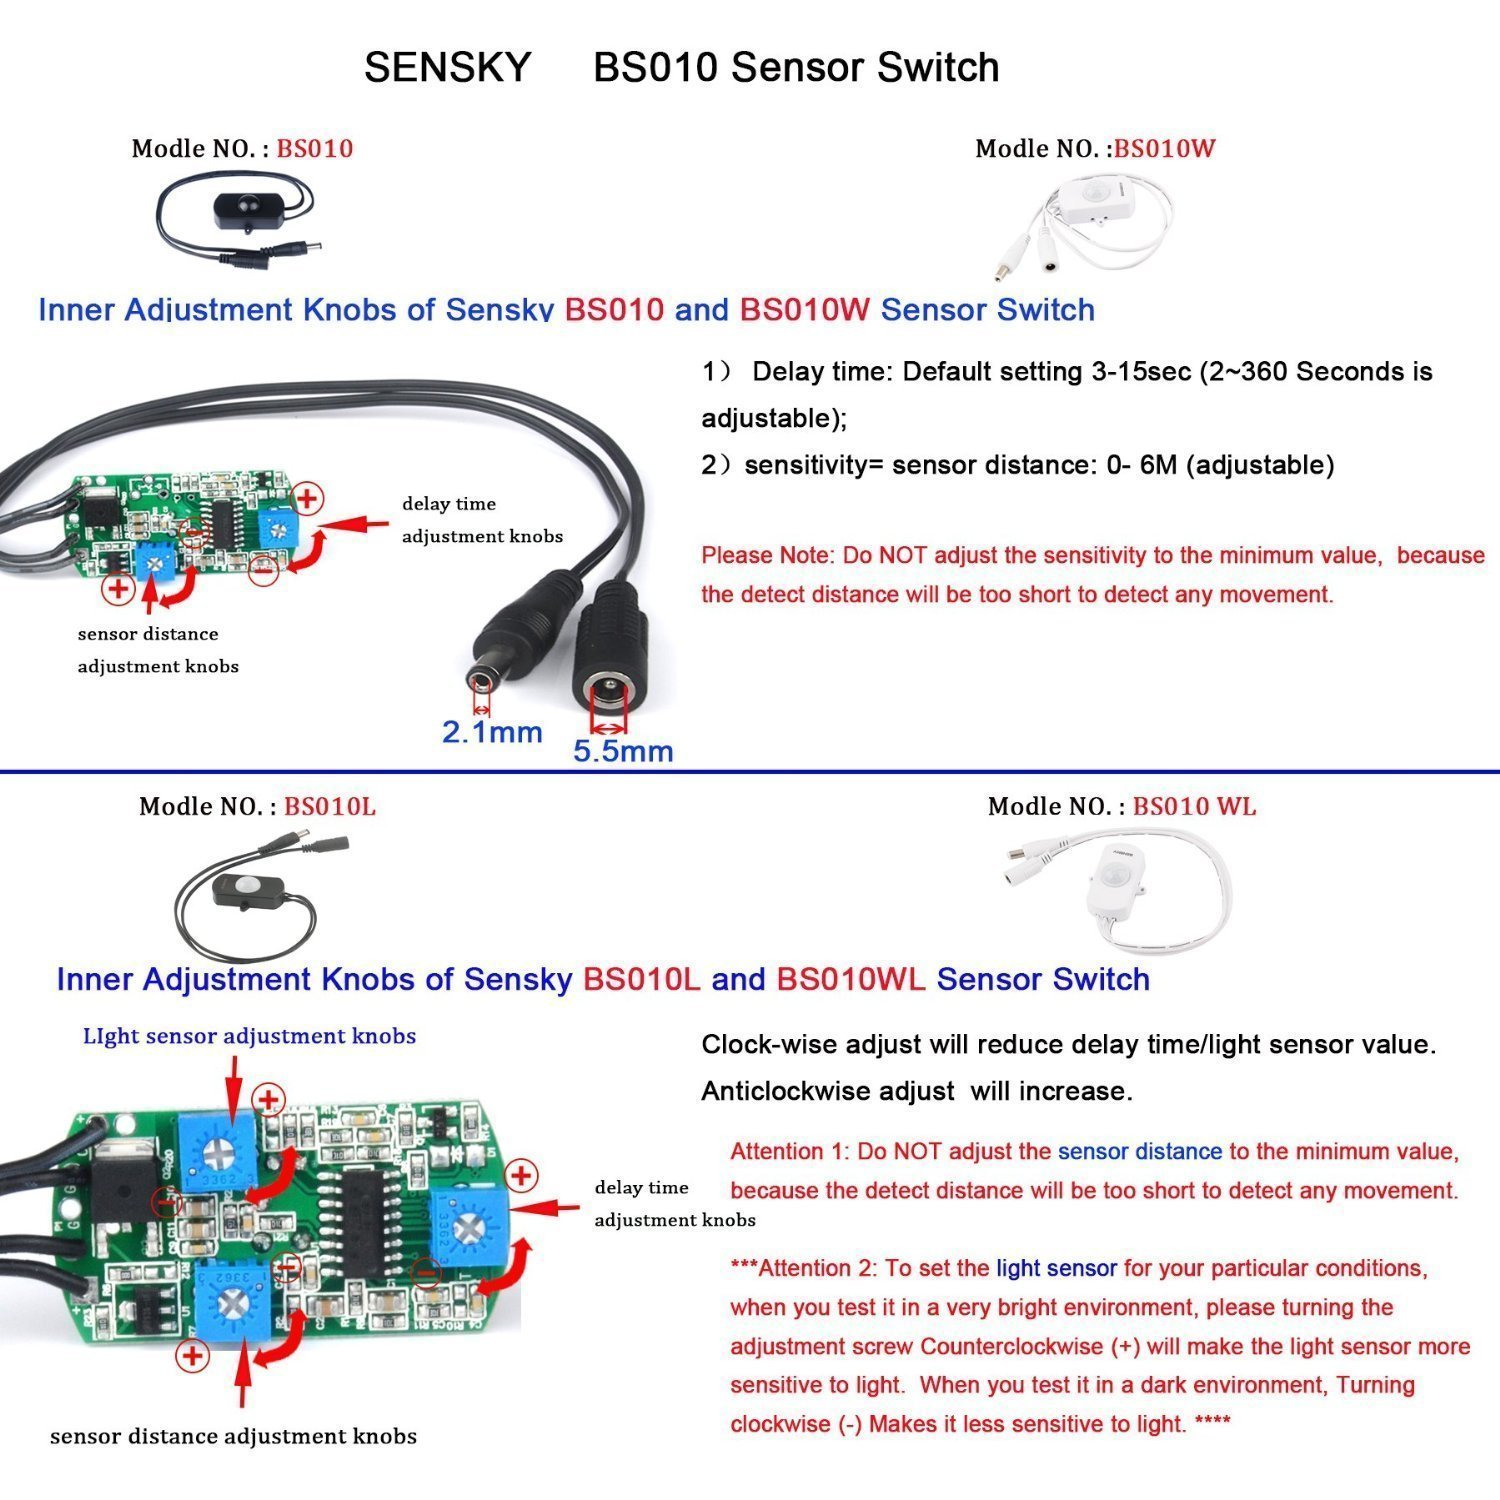 Sensky Bs010 12v 24v 3a Pir Motion Sensor Long Distance Sensitive Ir Switch Circuit Time Adjustable Small Senser White Cover And Lens